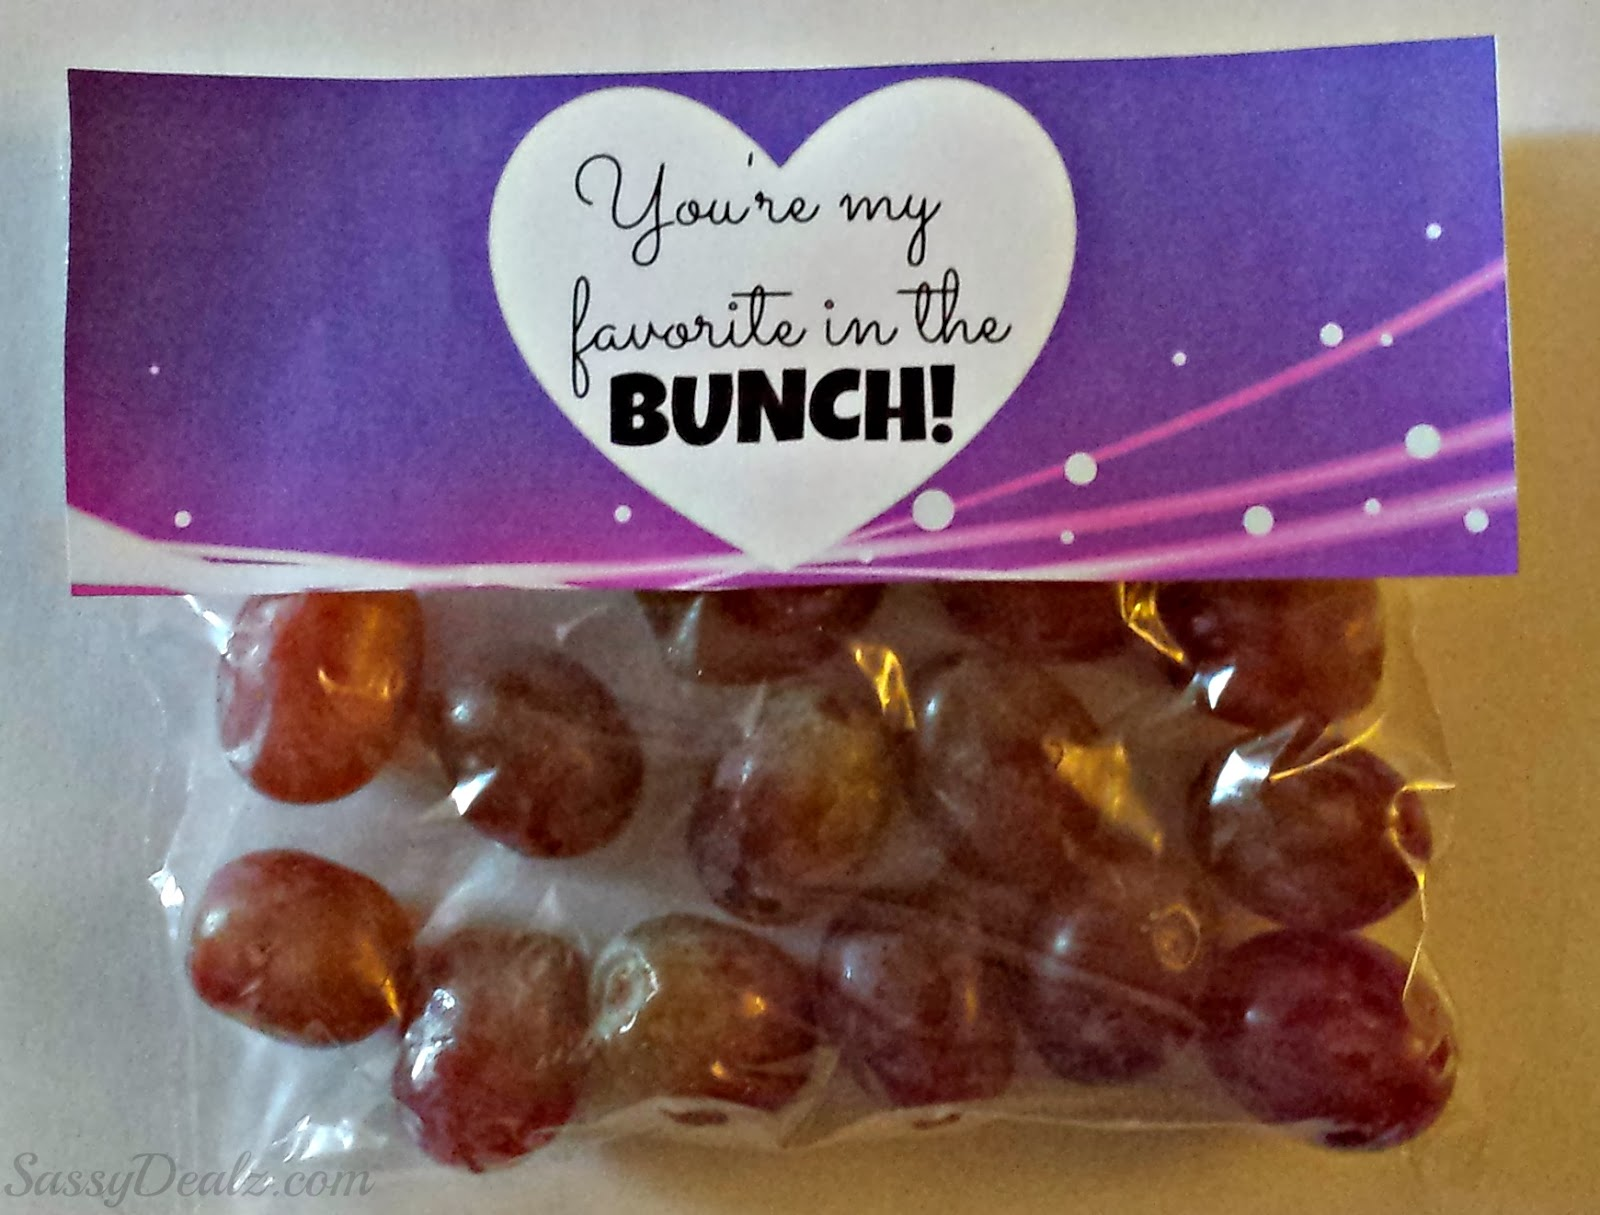 grapes valentine day gift non-candy